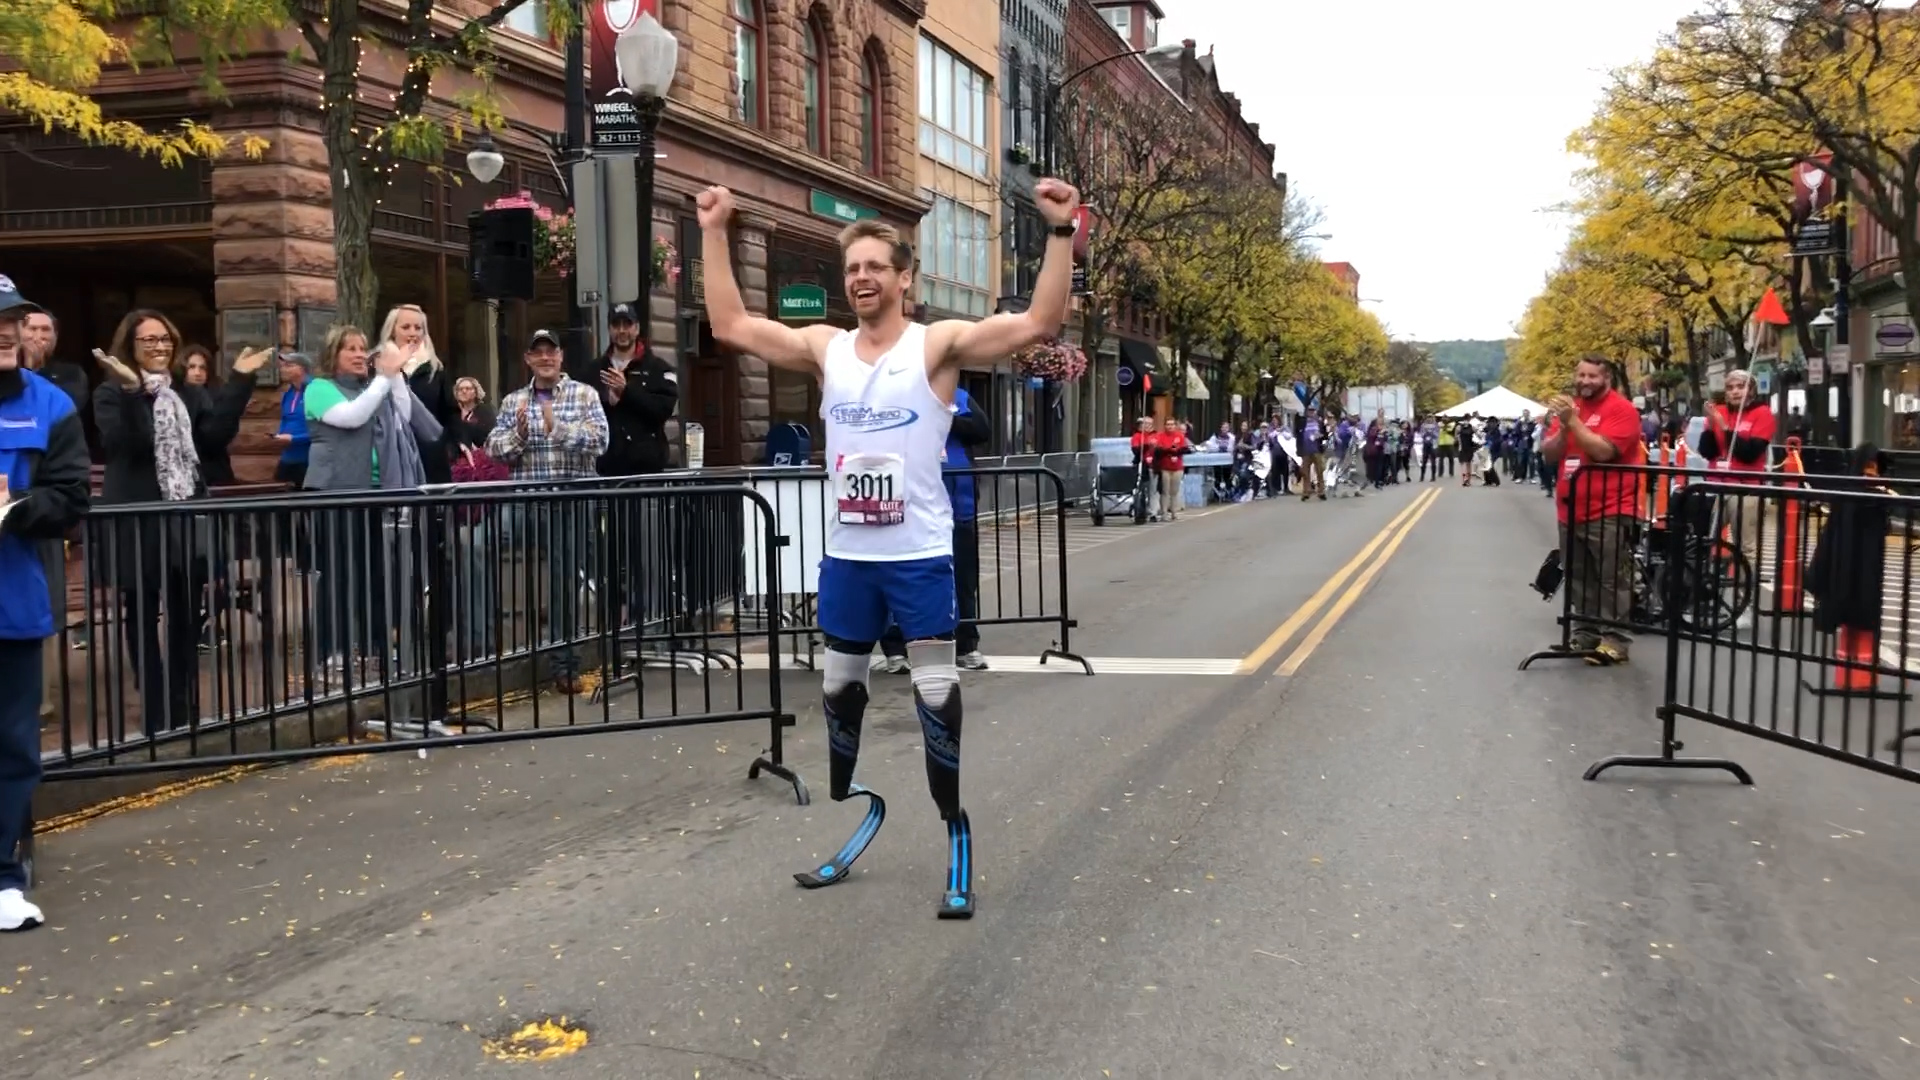 Double amputee breaks half-marathon record in Corning over the weekend